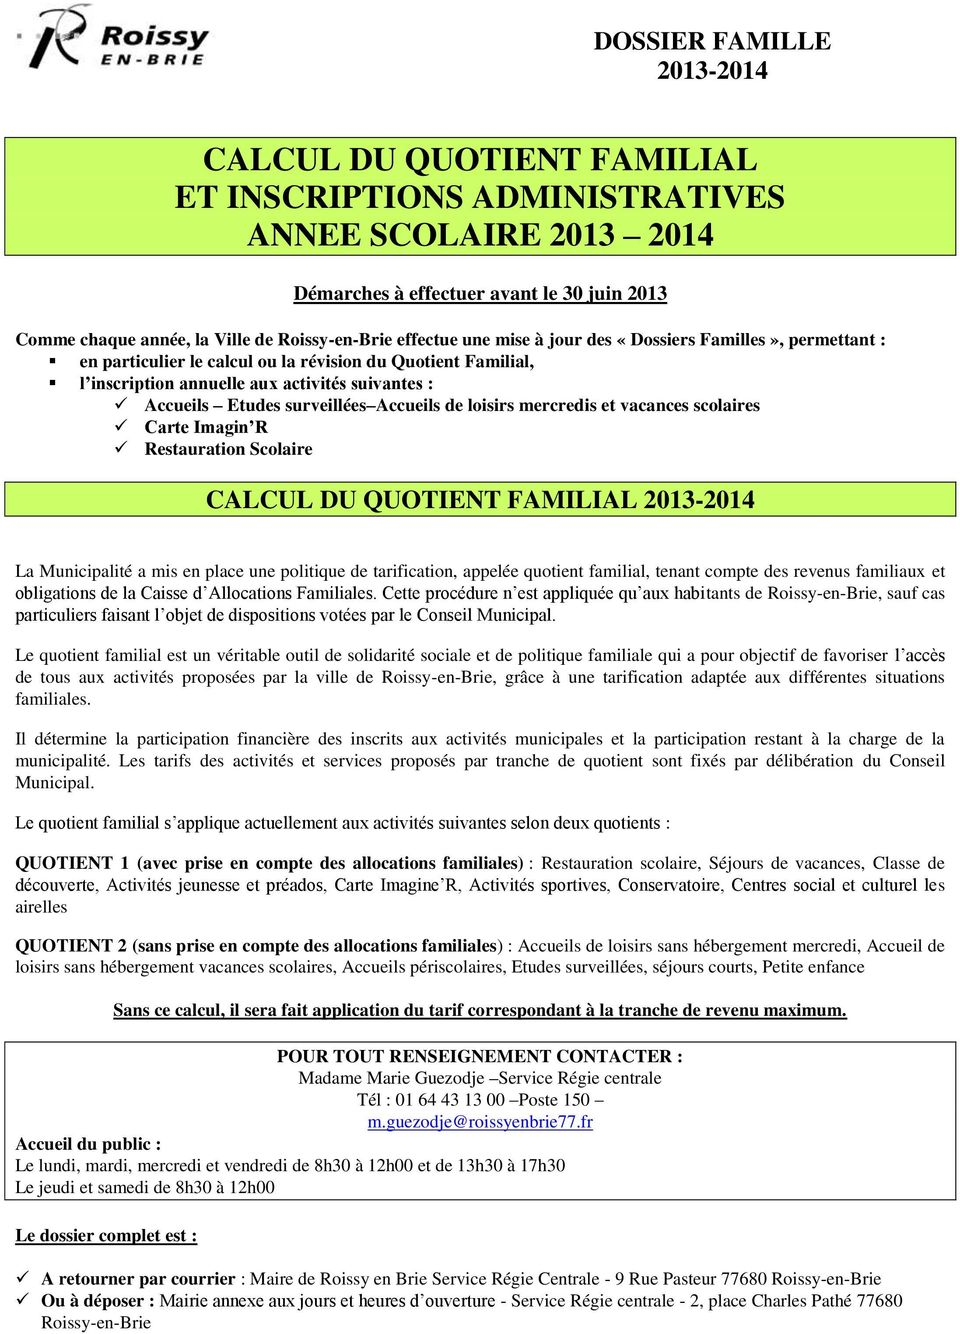 Calcul Du Quotient Familial Et Inscriptions Administratives Annee